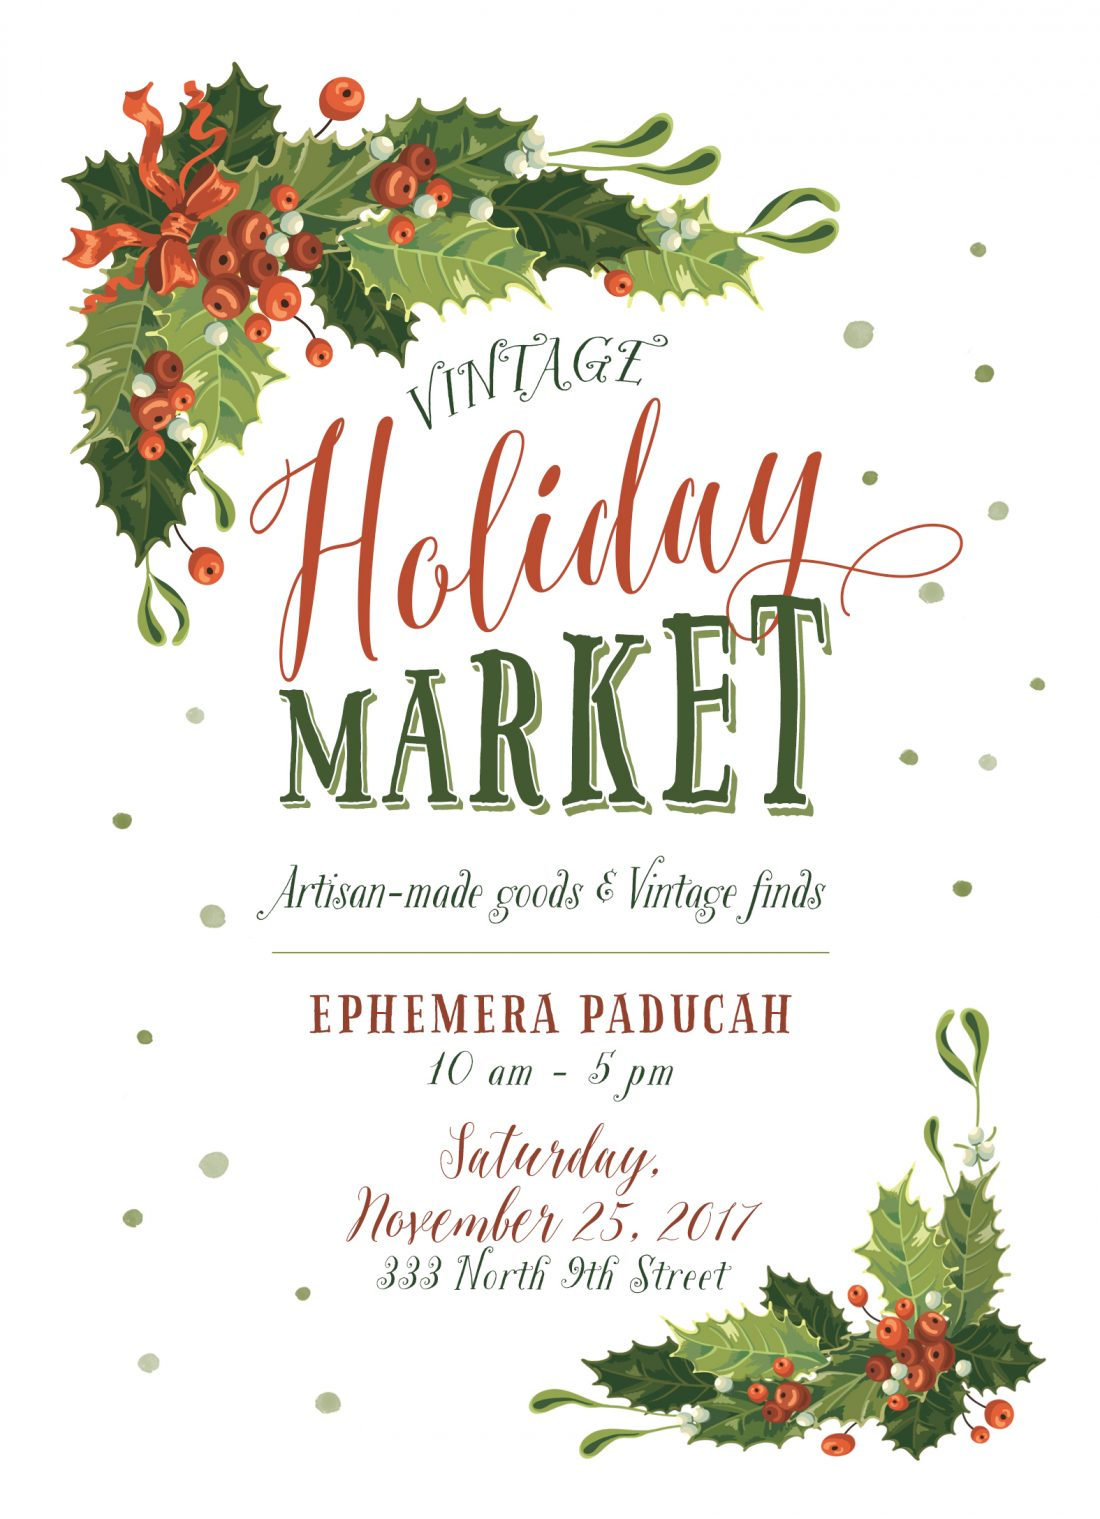 Vintage Holiday Market November 25, 2017